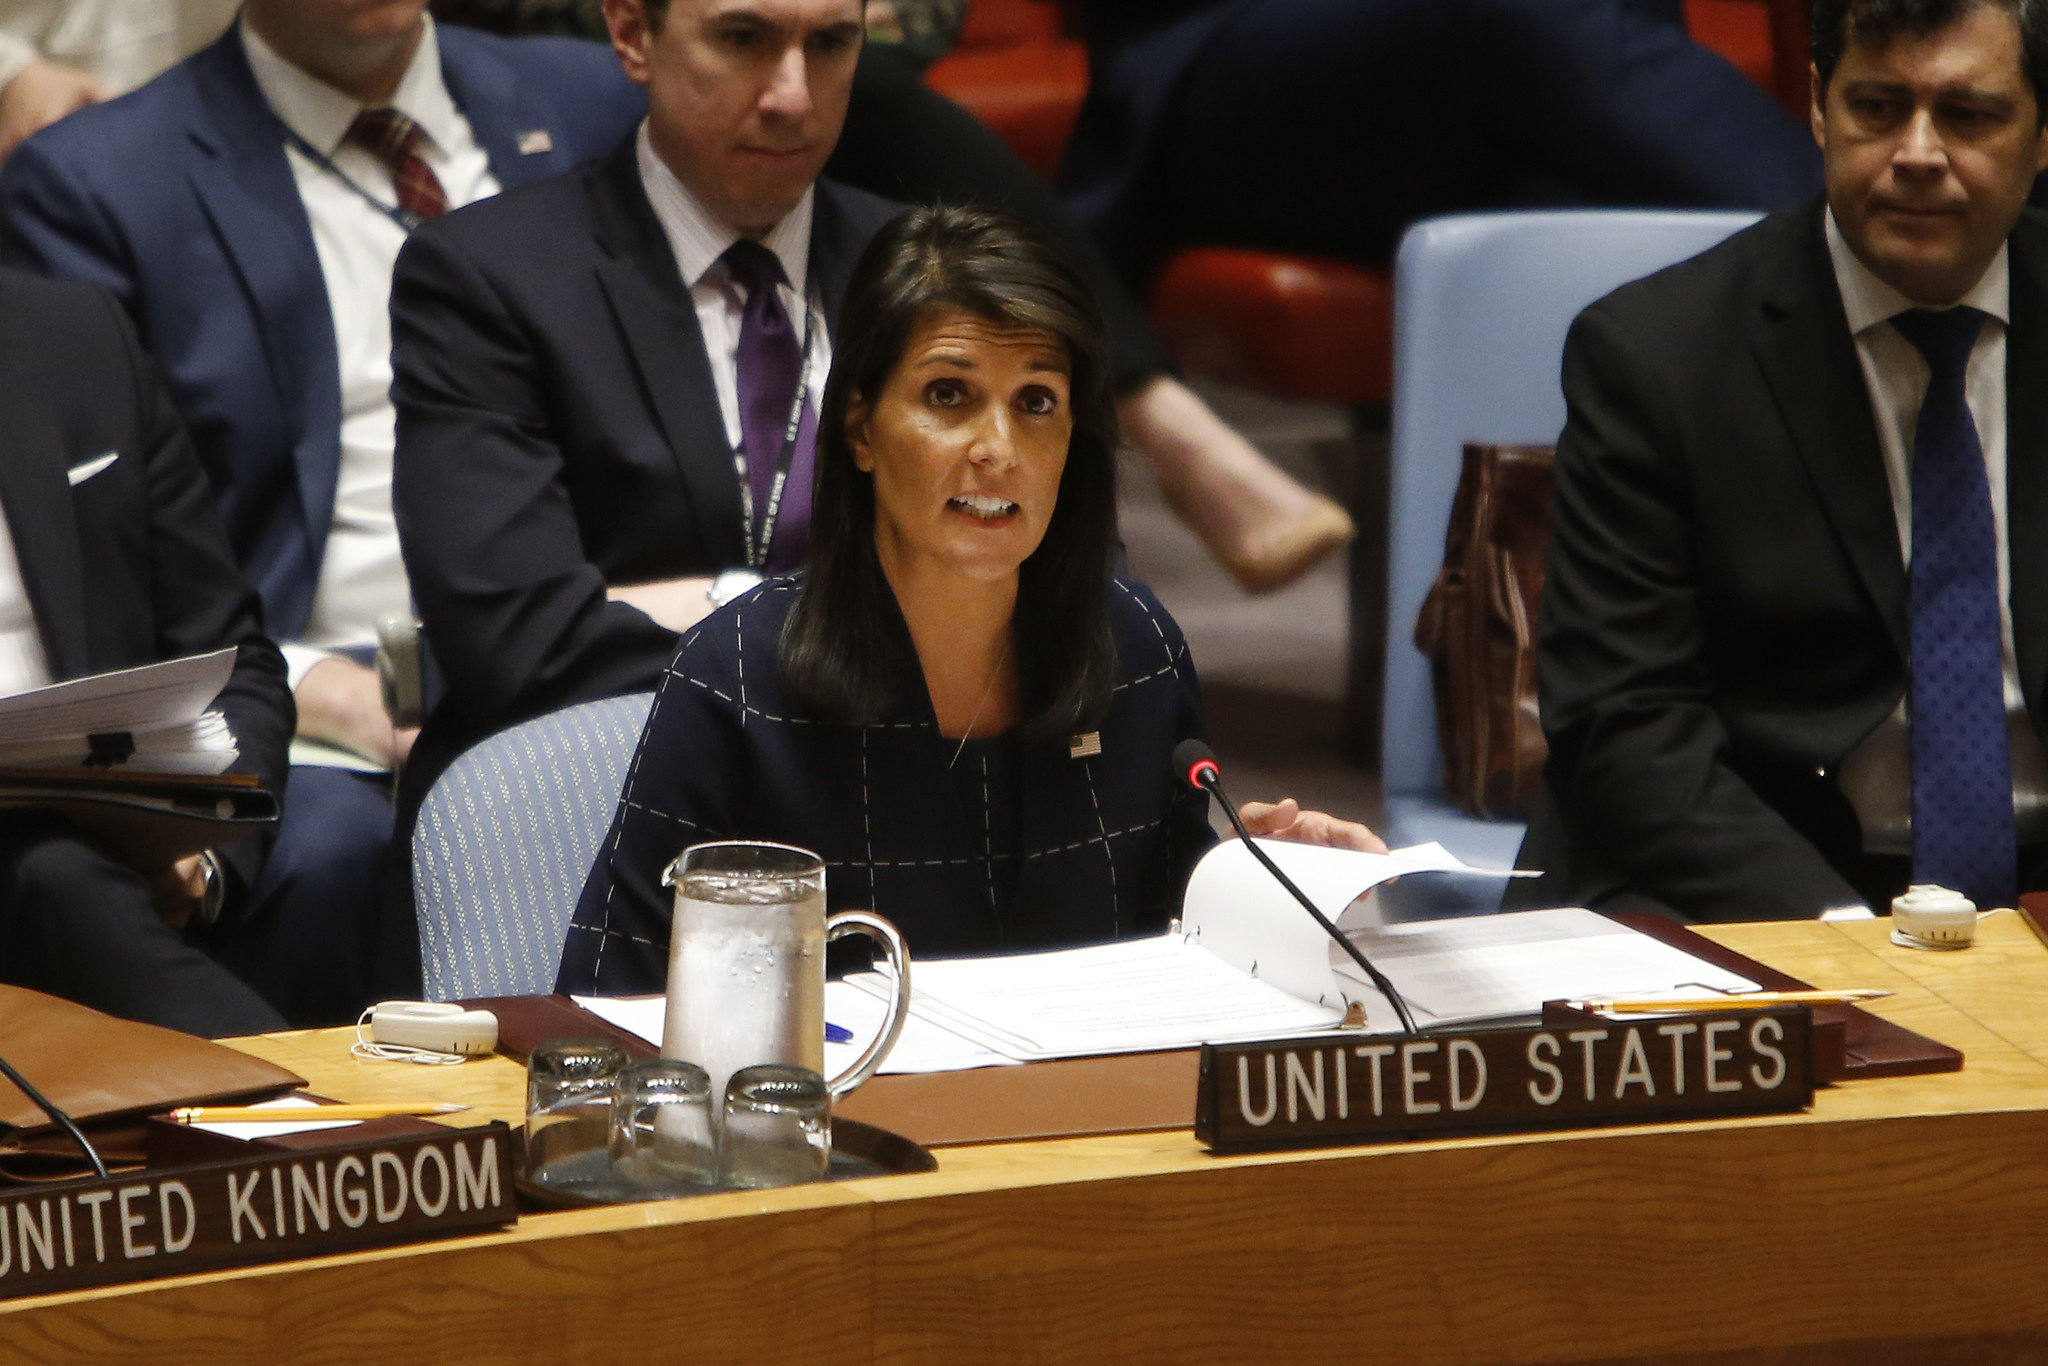 North Korea Warns US of Retaliation for Tough UN Sanctions